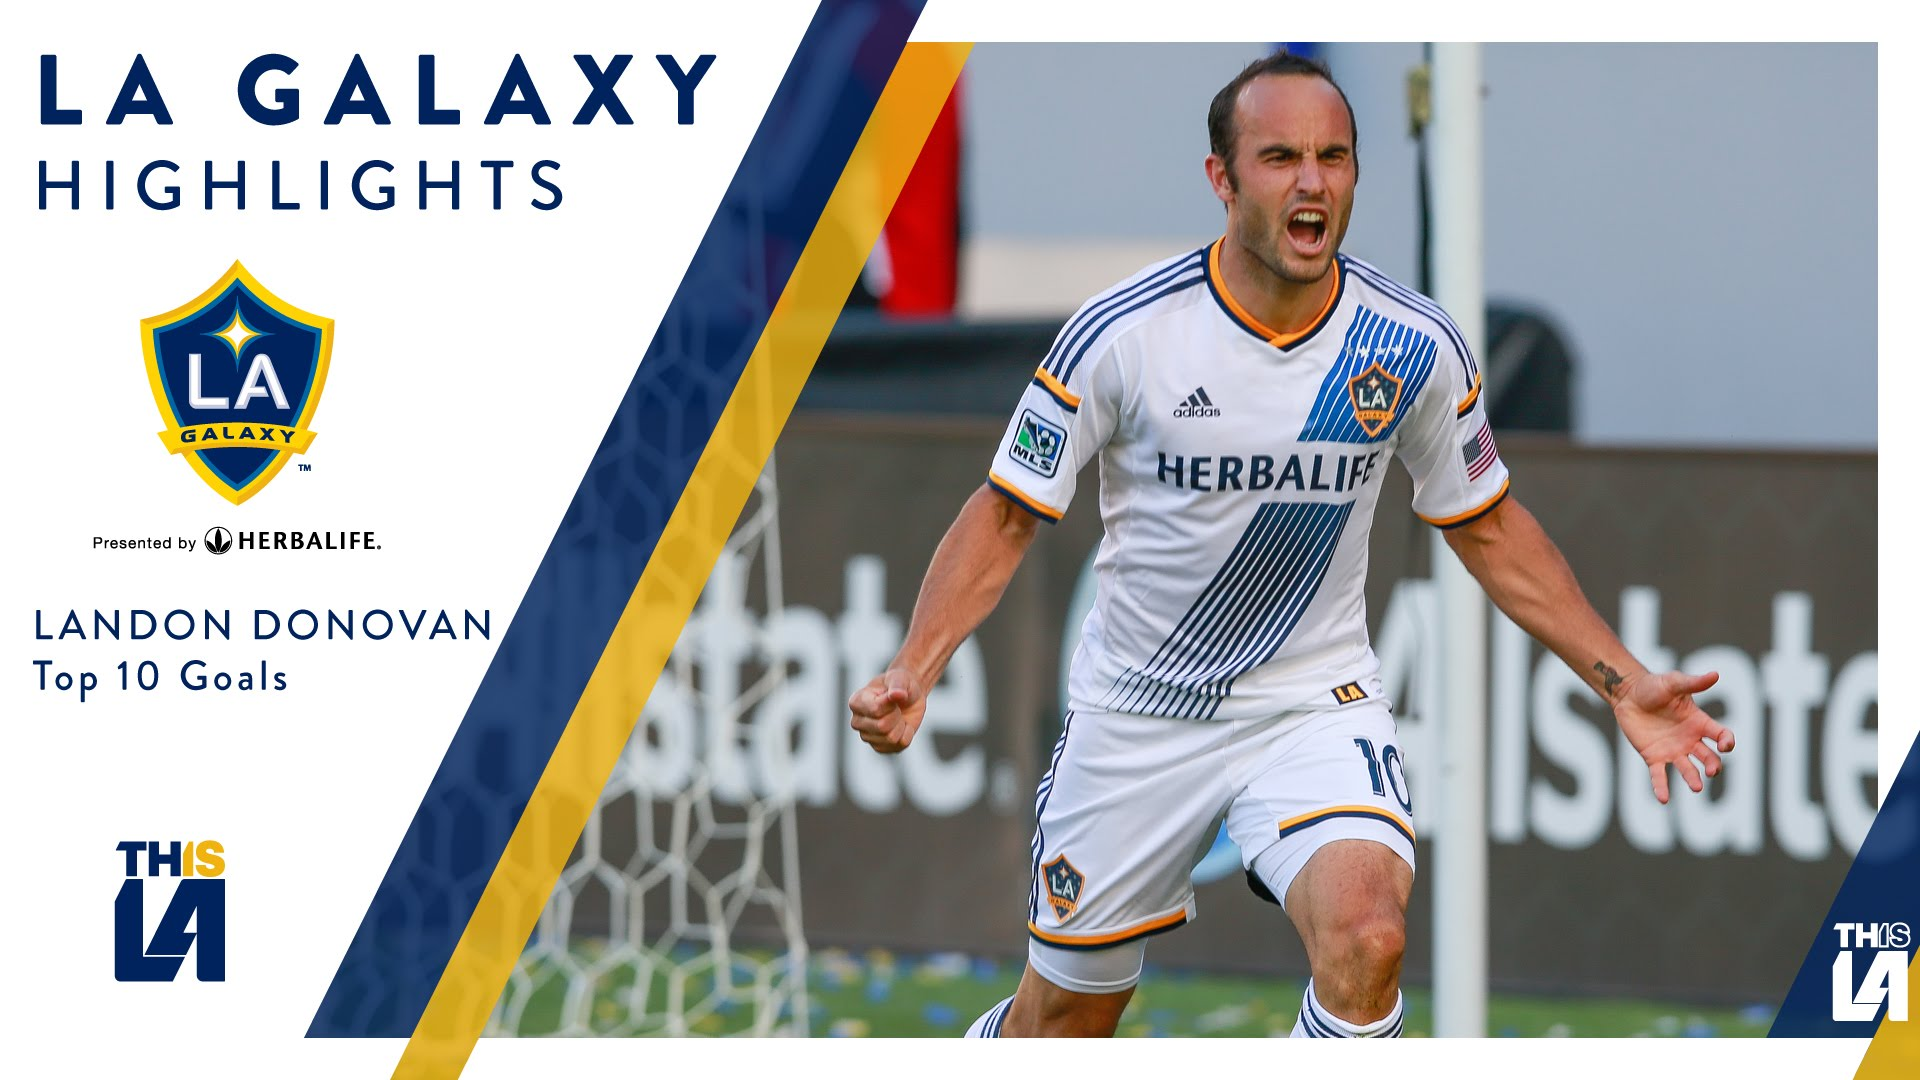 Former LA Galaxy star Landon Donovan to return to playing professional  soccer